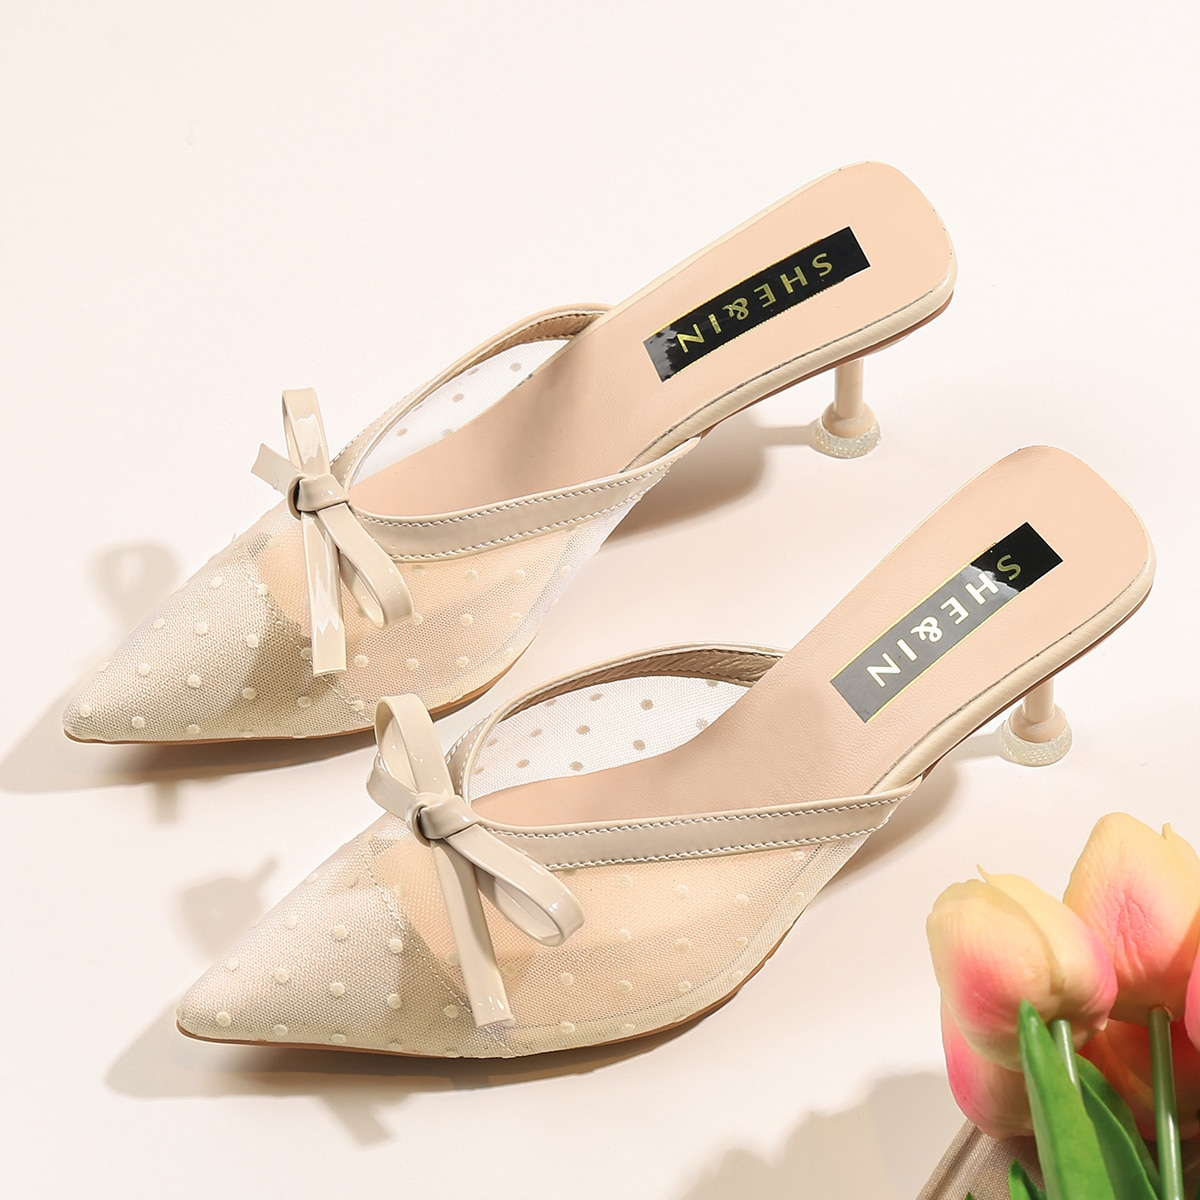 Bow Decor Stiletto Heeled Mules, SHEIN  - buy with discount